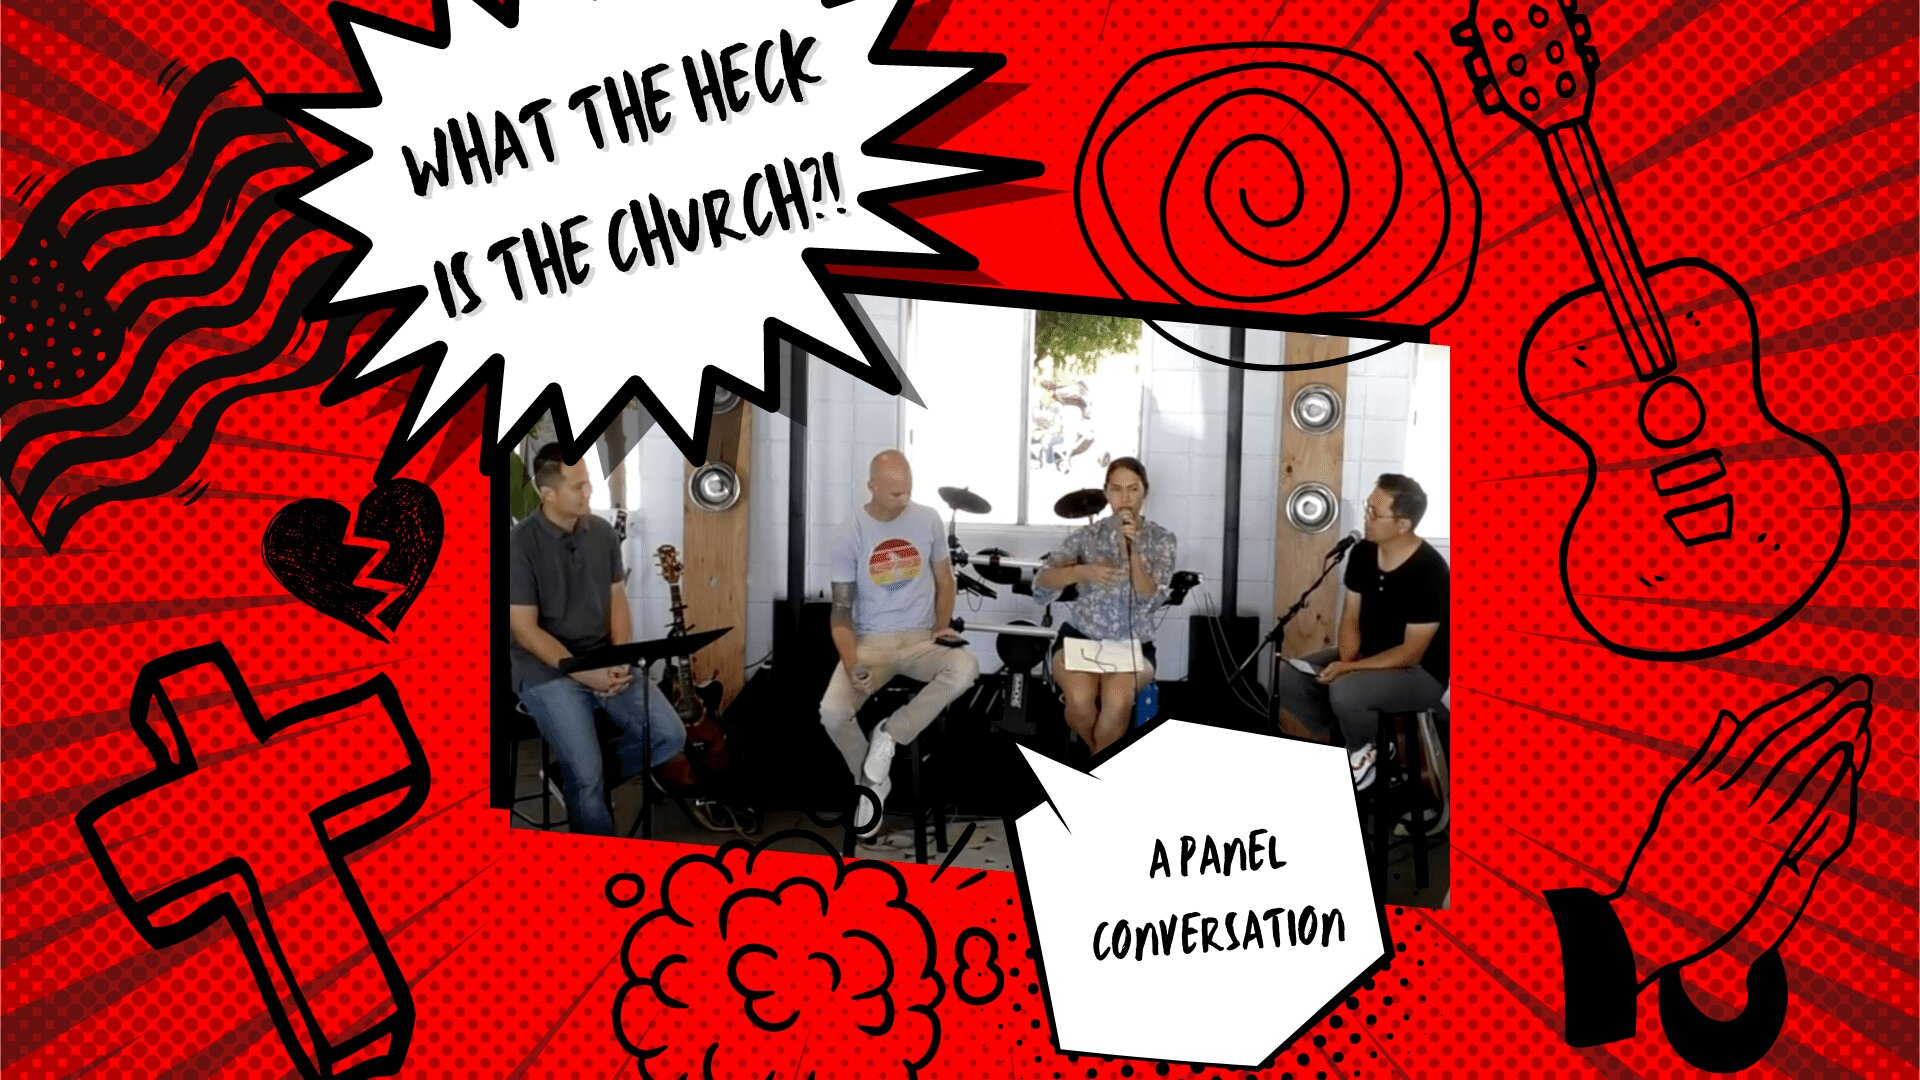 """Panel Conversation : """"What the Heck is the Church"""""""